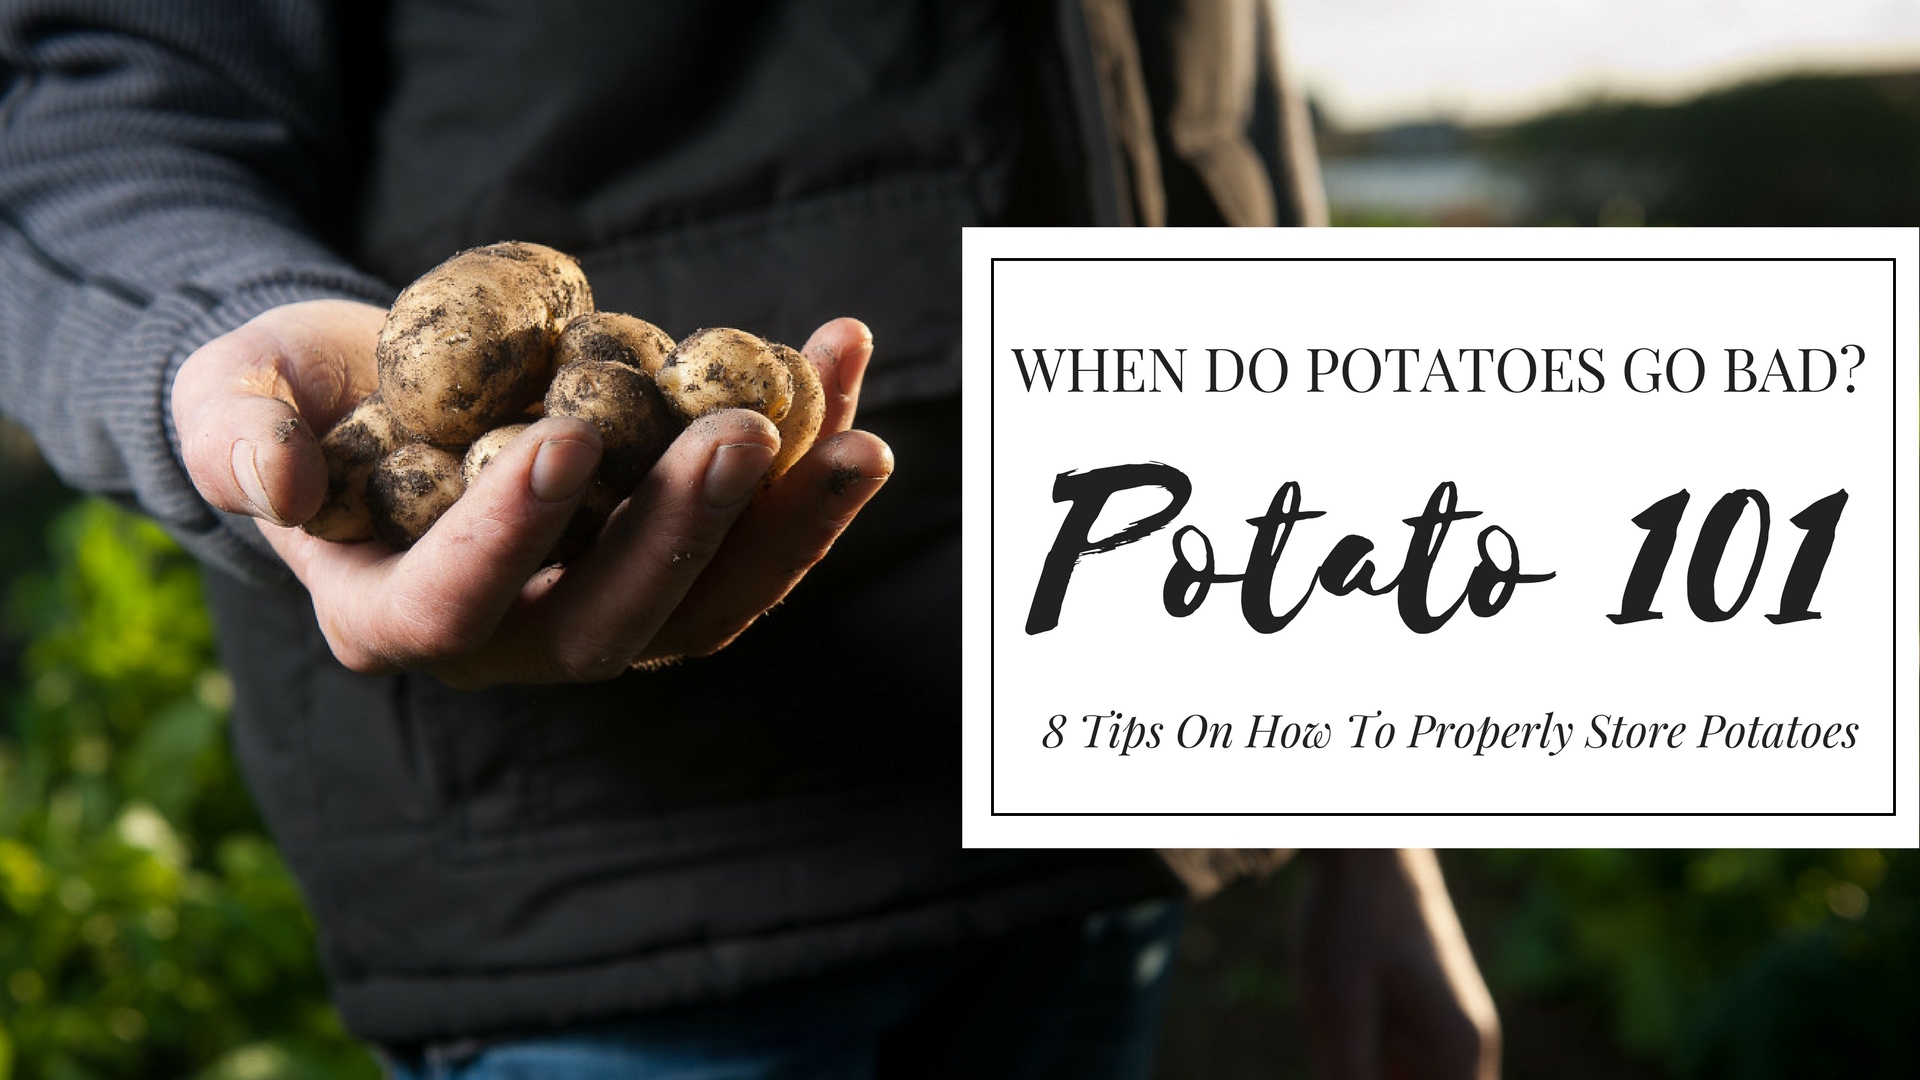 When do potatoes go bad? Is it bad when it's soft and sprouting? Find out the signs of bad potatoes and tips on how to properly store potatoes.